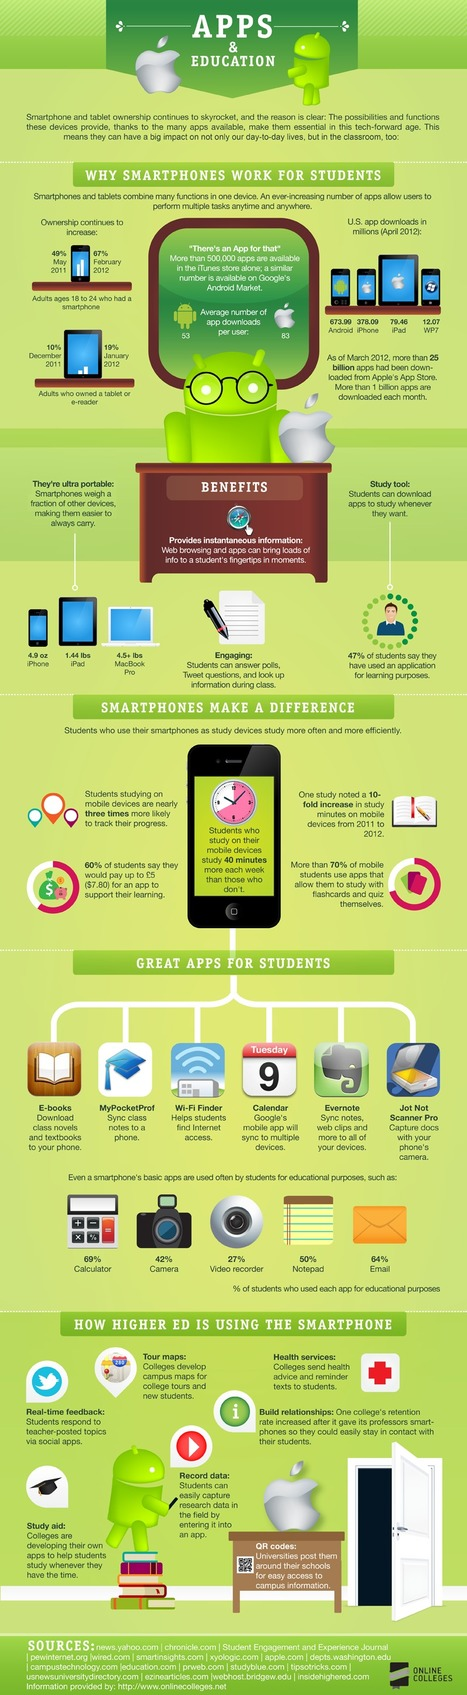 Trends | Infographic: Apps and Education | Technology and Education Resources | Scoop.it